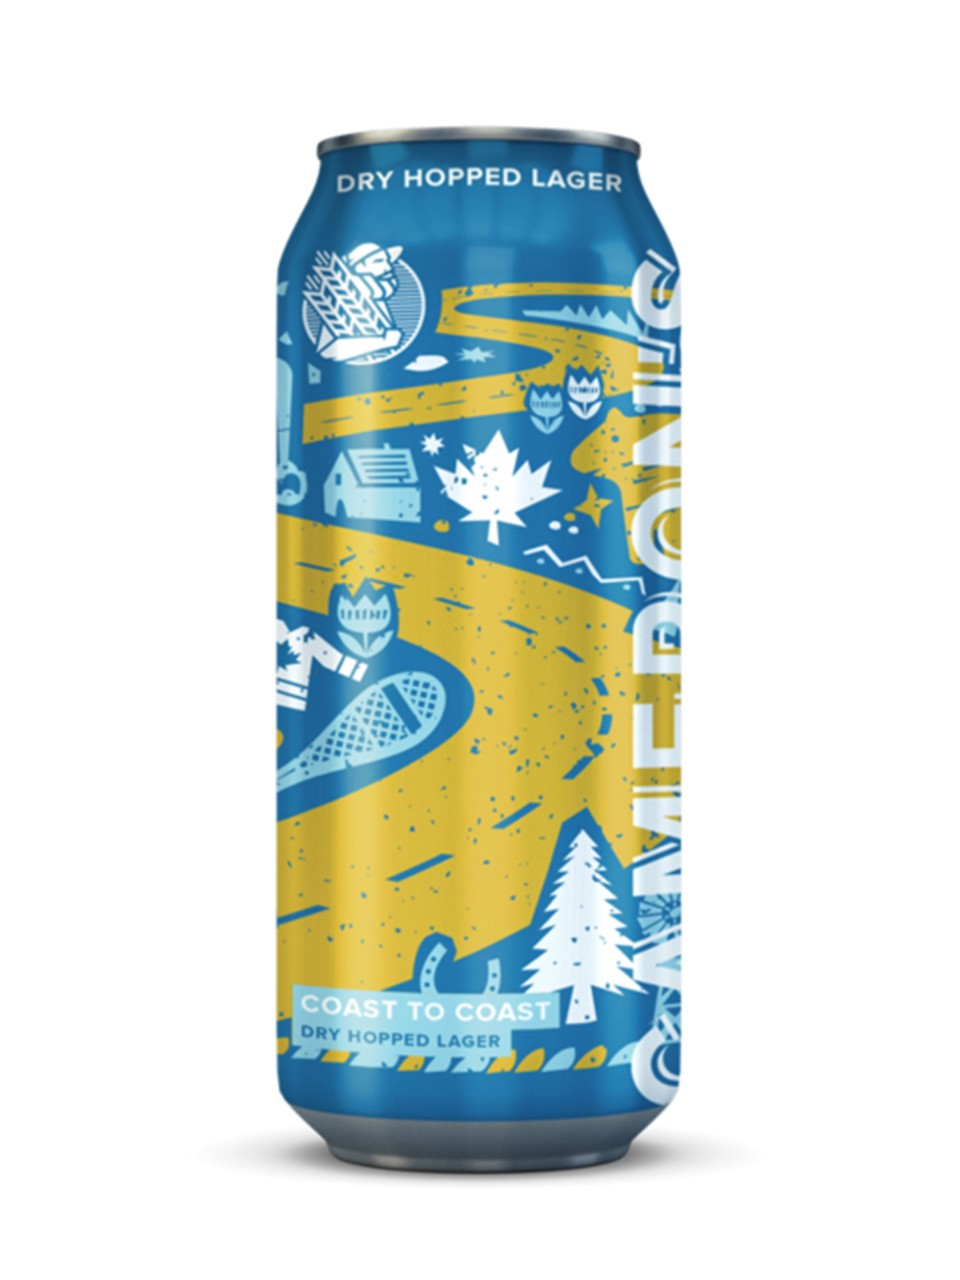 Cameron's 12 Mile Lager from LCBO